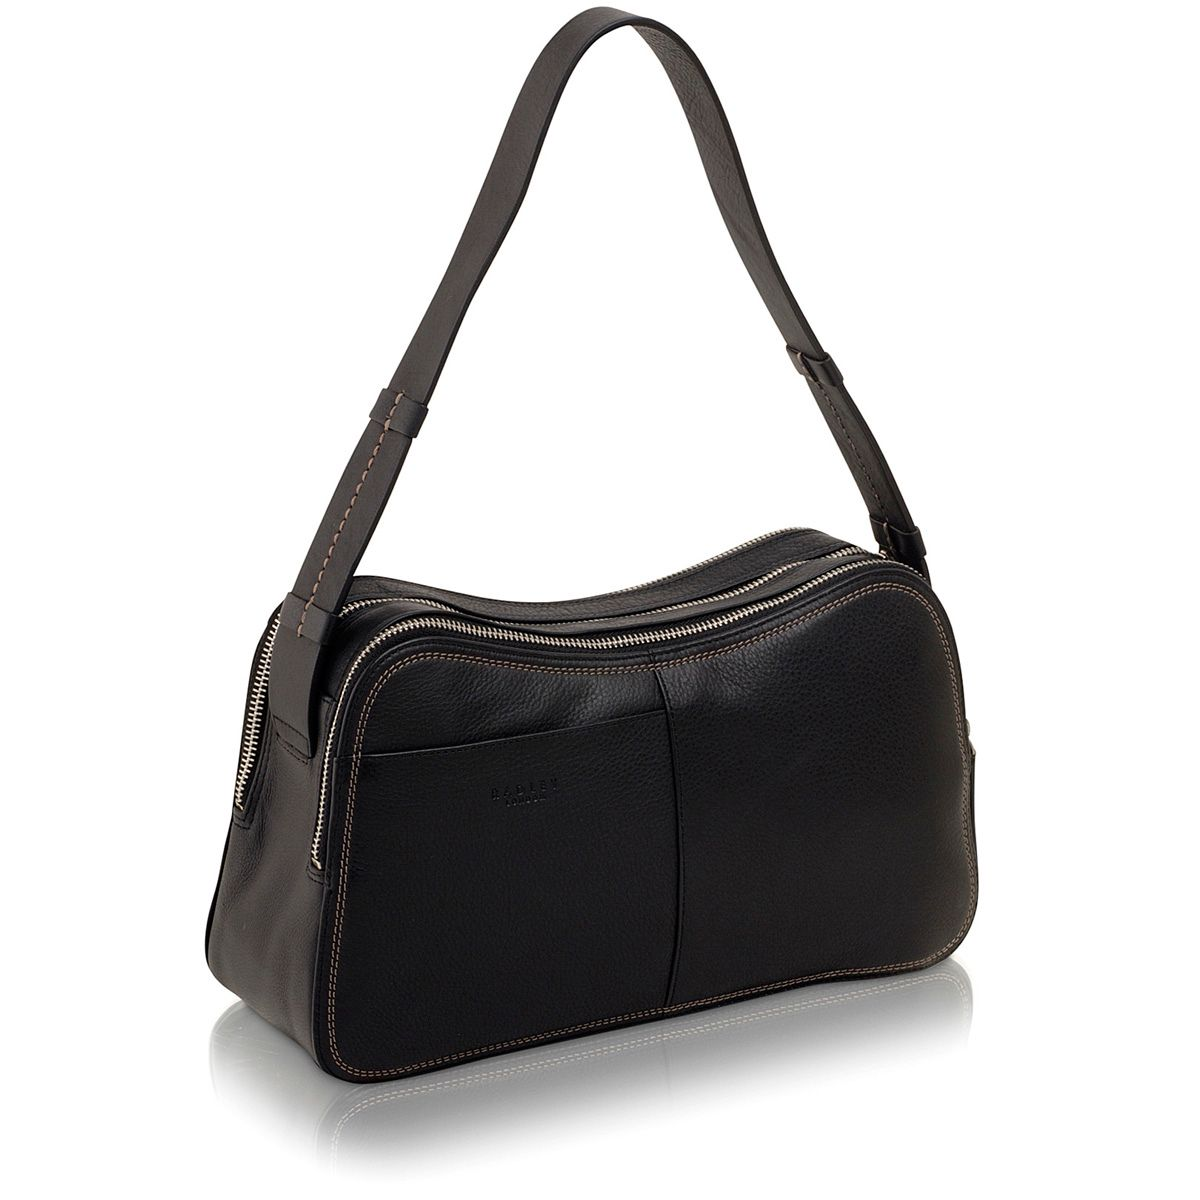 Westbury black medium shoulder bag